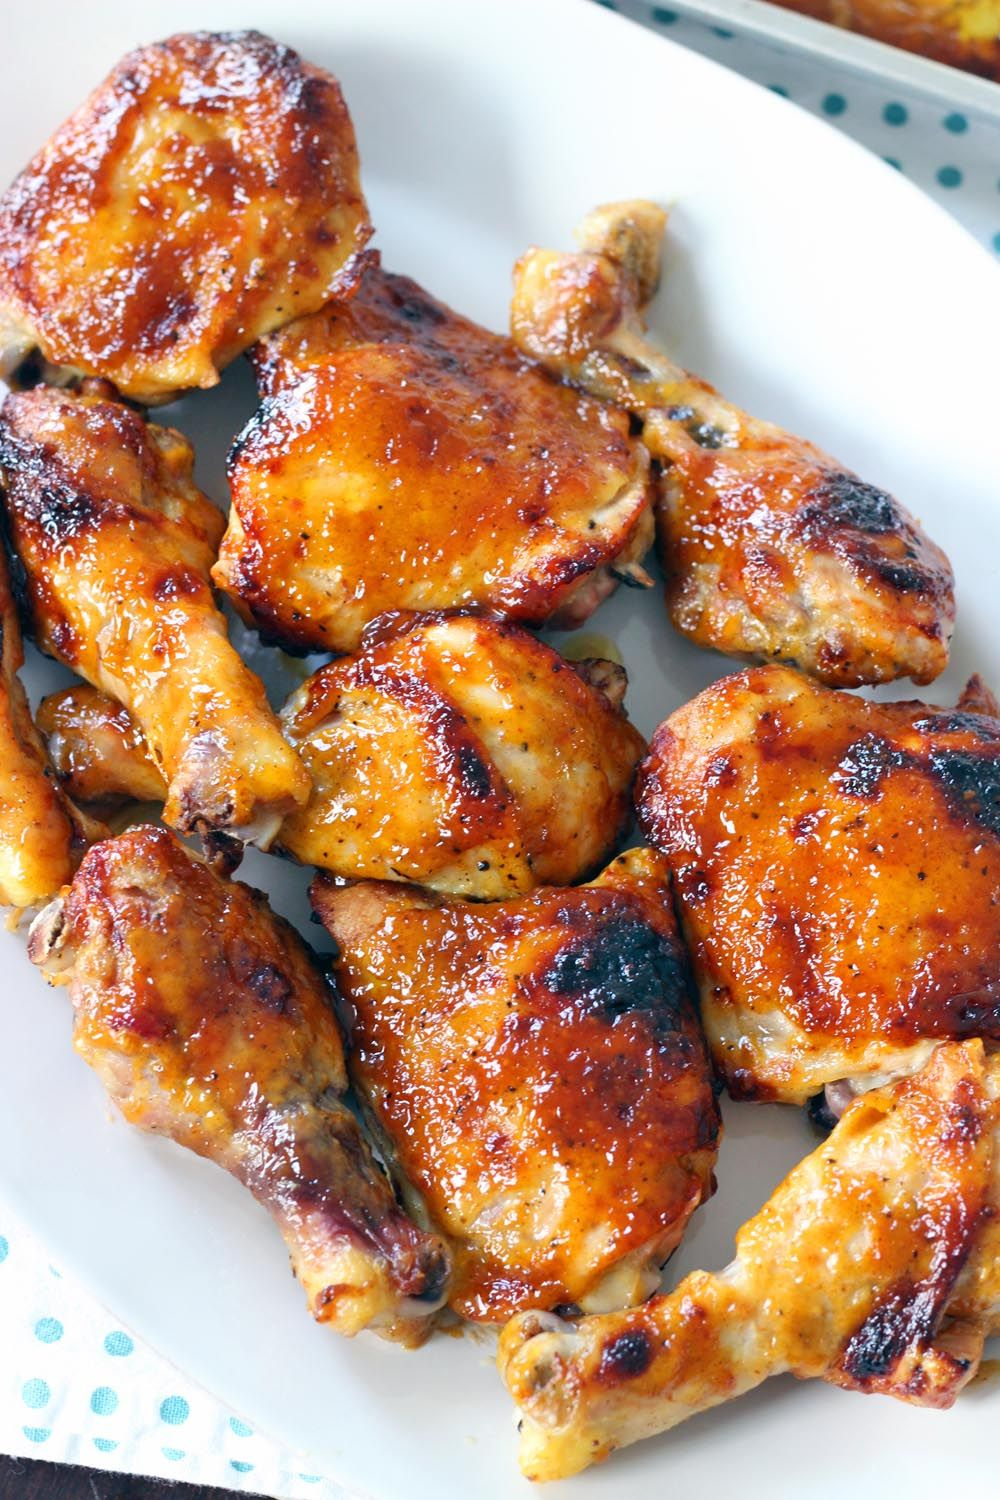 This Recipe Uses Only Two Ingredients Barbecue Sauce And Chicken Plus A Little Olive Oil Salt And Pepper To Make The Crispiest Most Perfectly